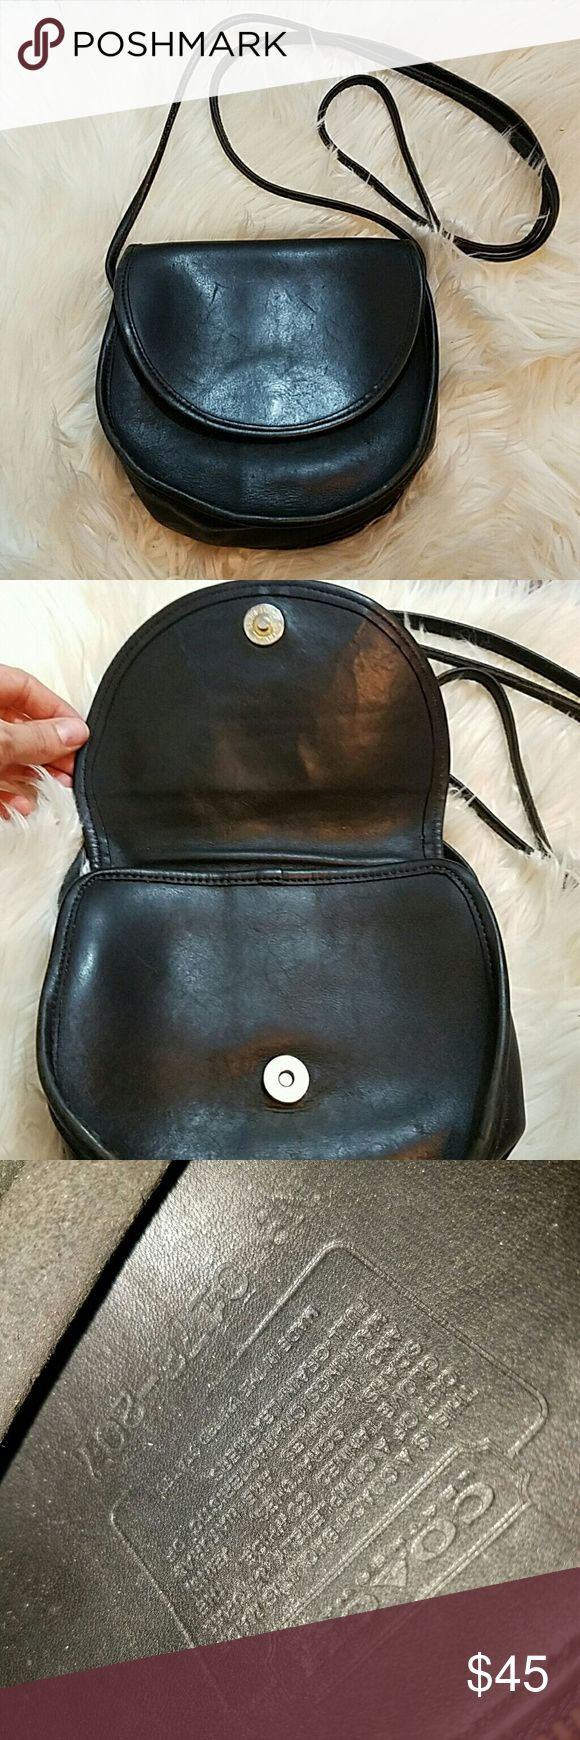 Vintage Coach Black Leather Crossbody Purse Vintage Coach Black Leather Crossbody Purse. Great used condition. *strap photo is how it is along the whole strap on one side from being a more vintage purse with the leather. Threads are fine   7.5 x 7.5 x 3 Coach Bags